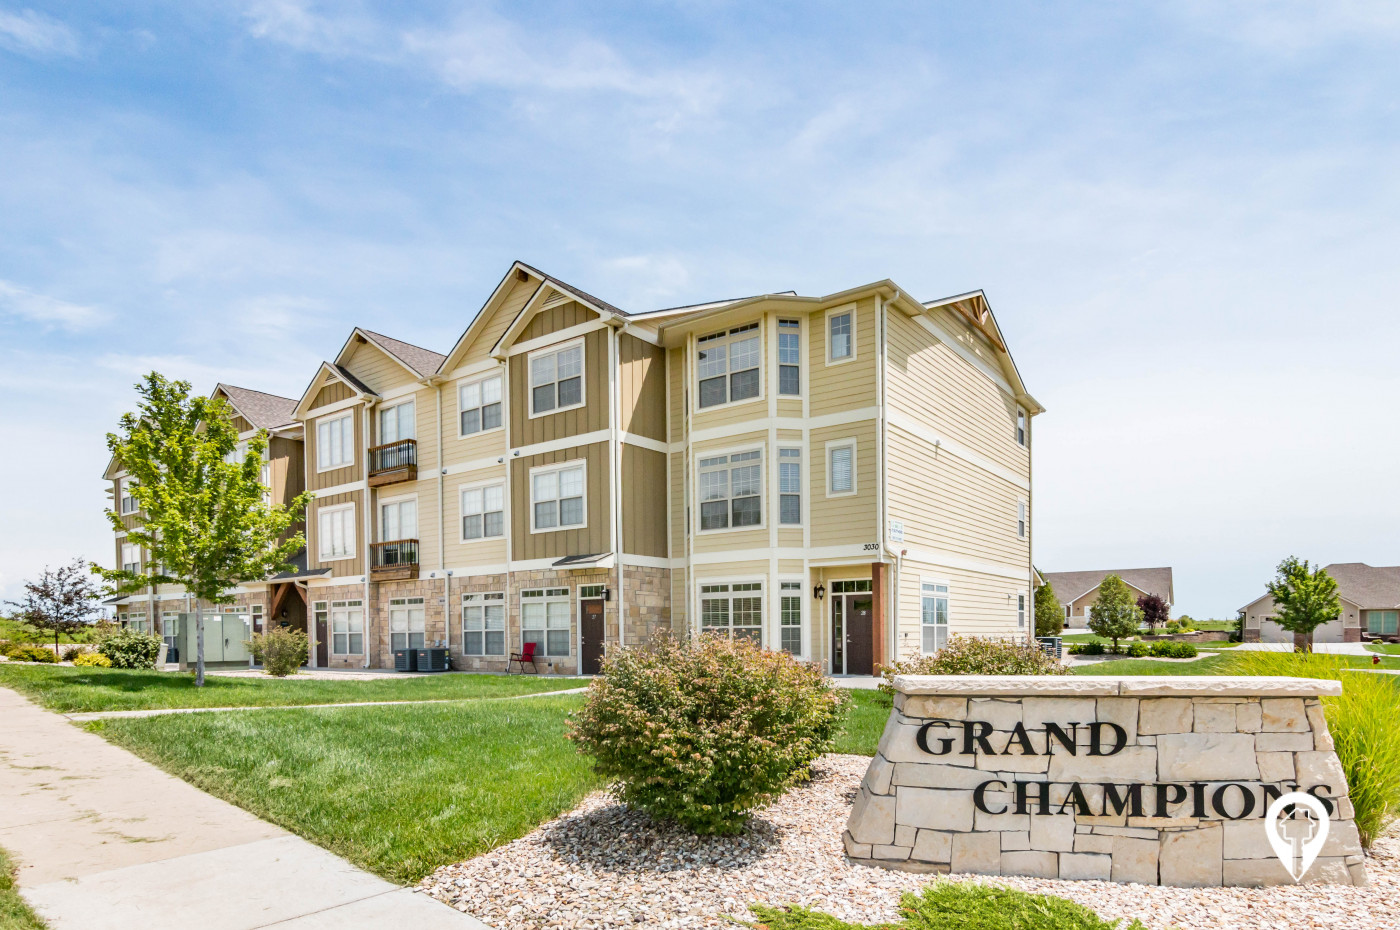 Grand Champions Apartments Video Tour